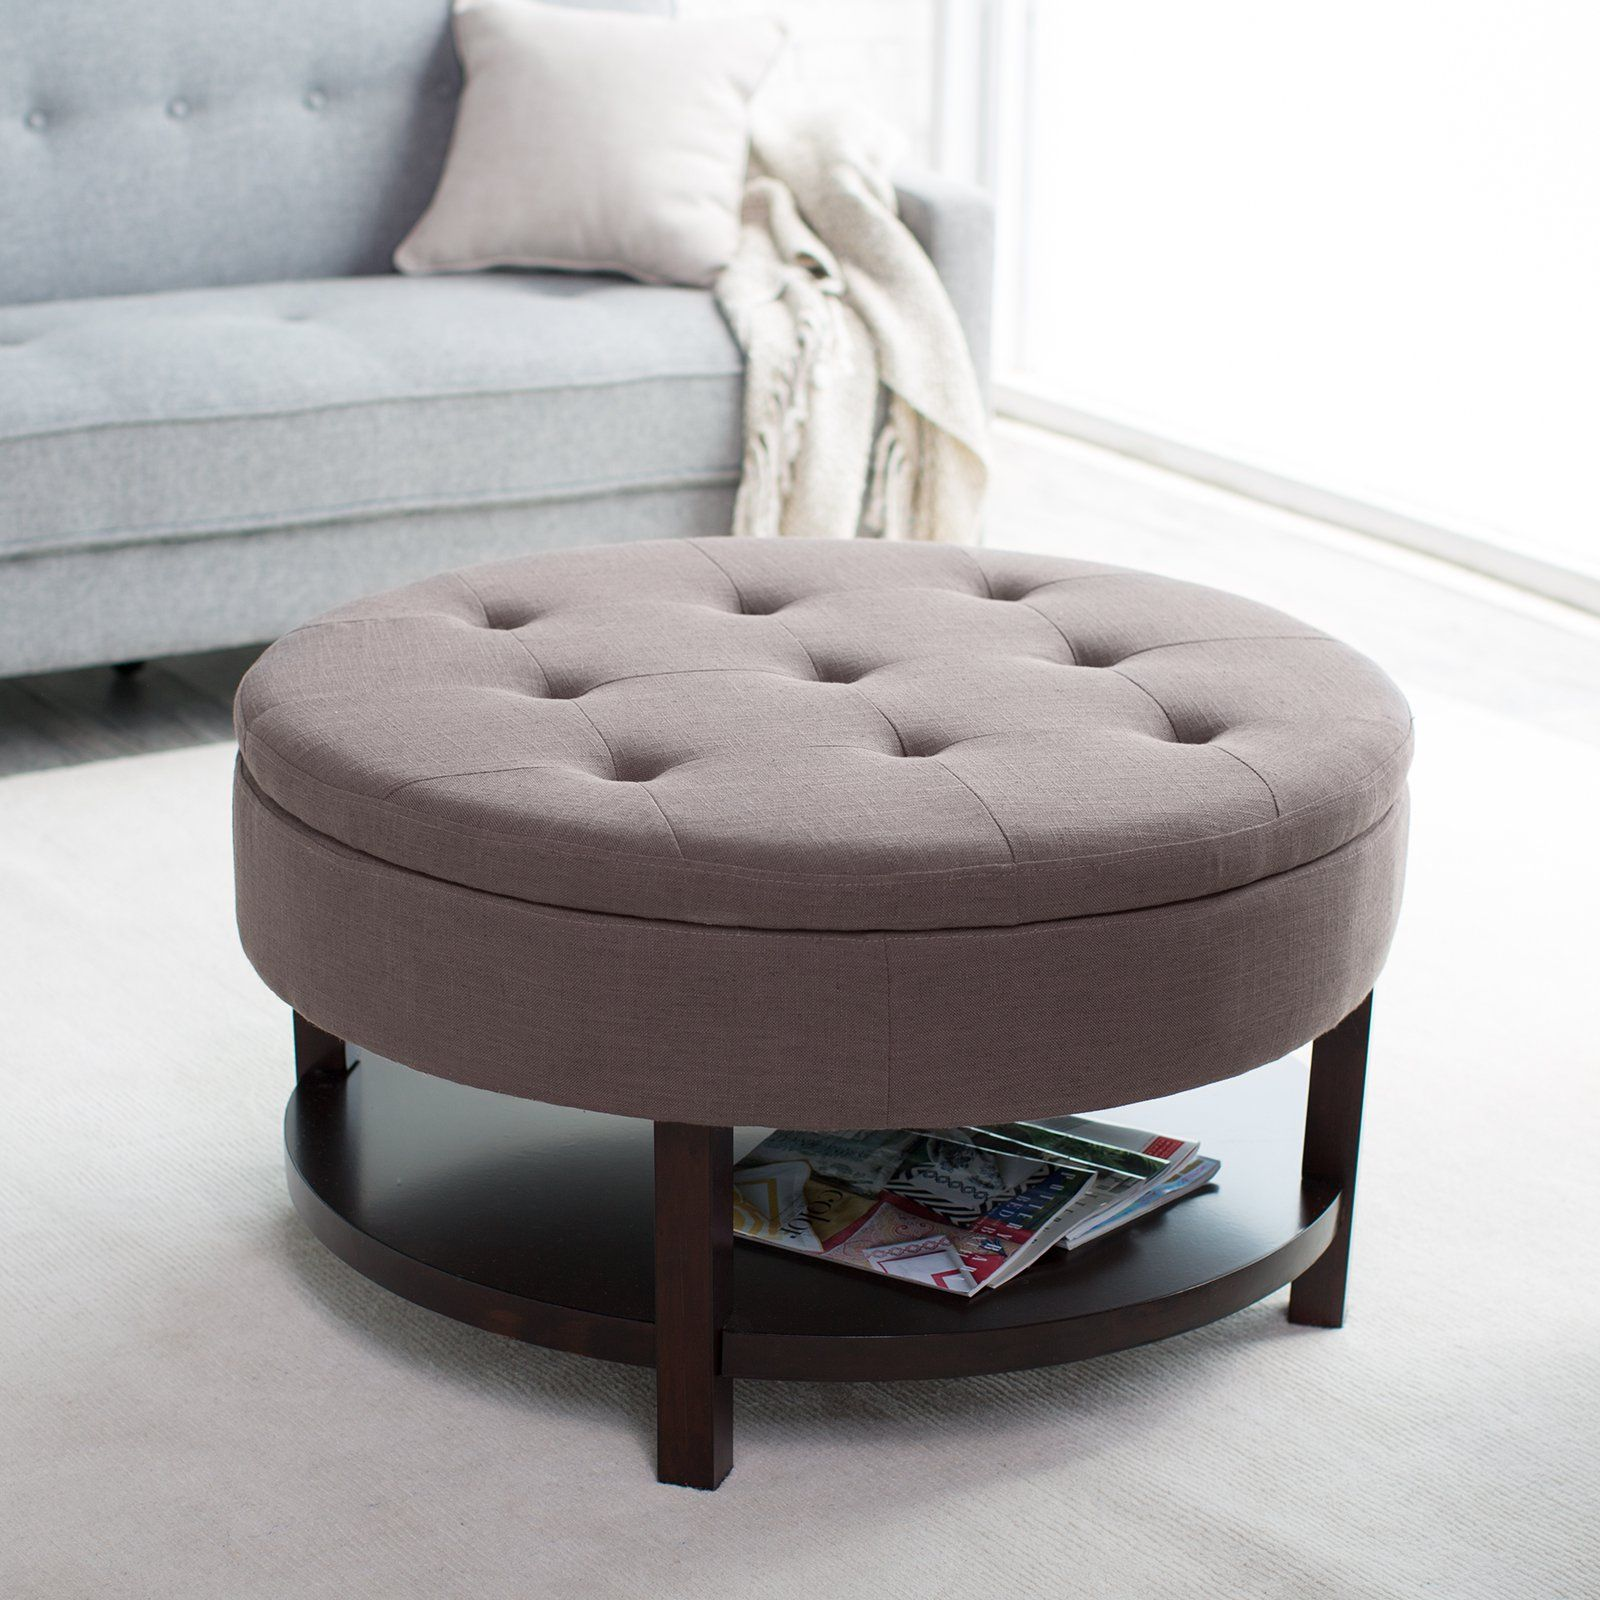 belham living coffee table storage ottoman with shelf  chocolate  - belham living coffee table storage ottoman with shelf  chocolate  in asmall space